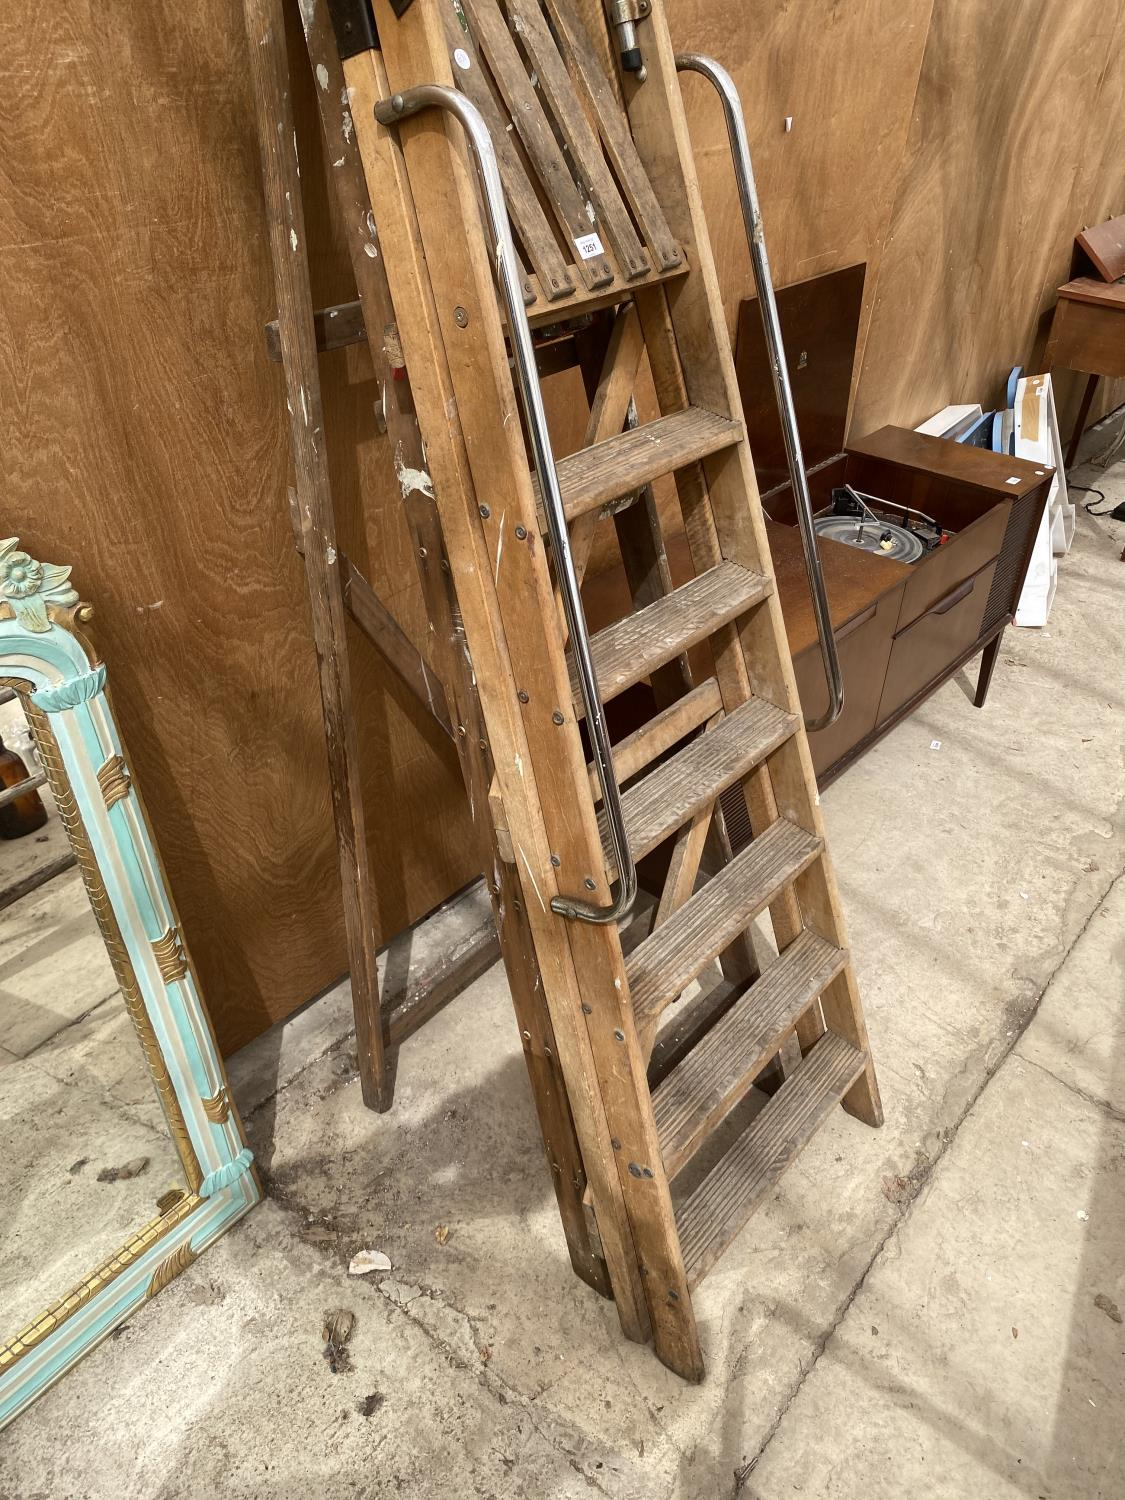 A VINTAGE 6 RUNG WOODEN STEP LADDER AND A VINTAGE 5 RUNG WOODEN STEP LADDER - Image 4 of 4